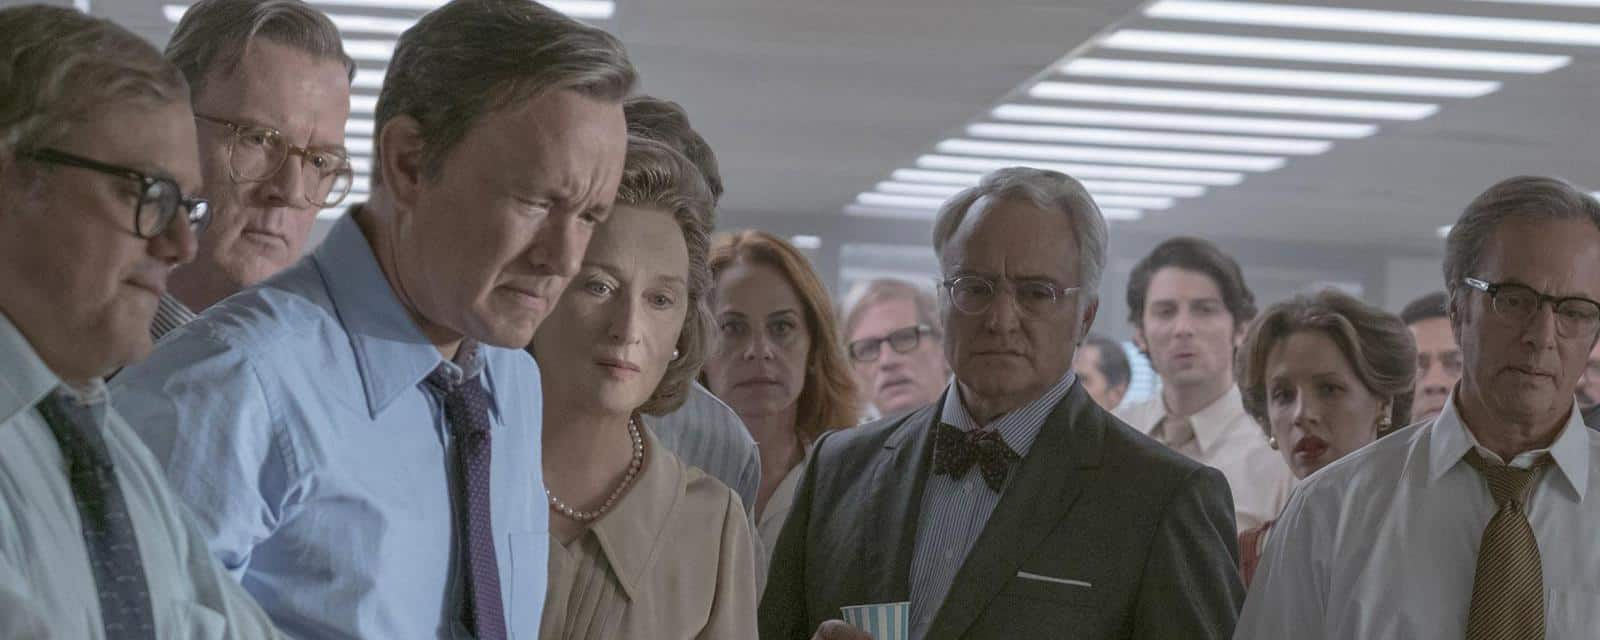 The Post - Film Review - Meryl Streep